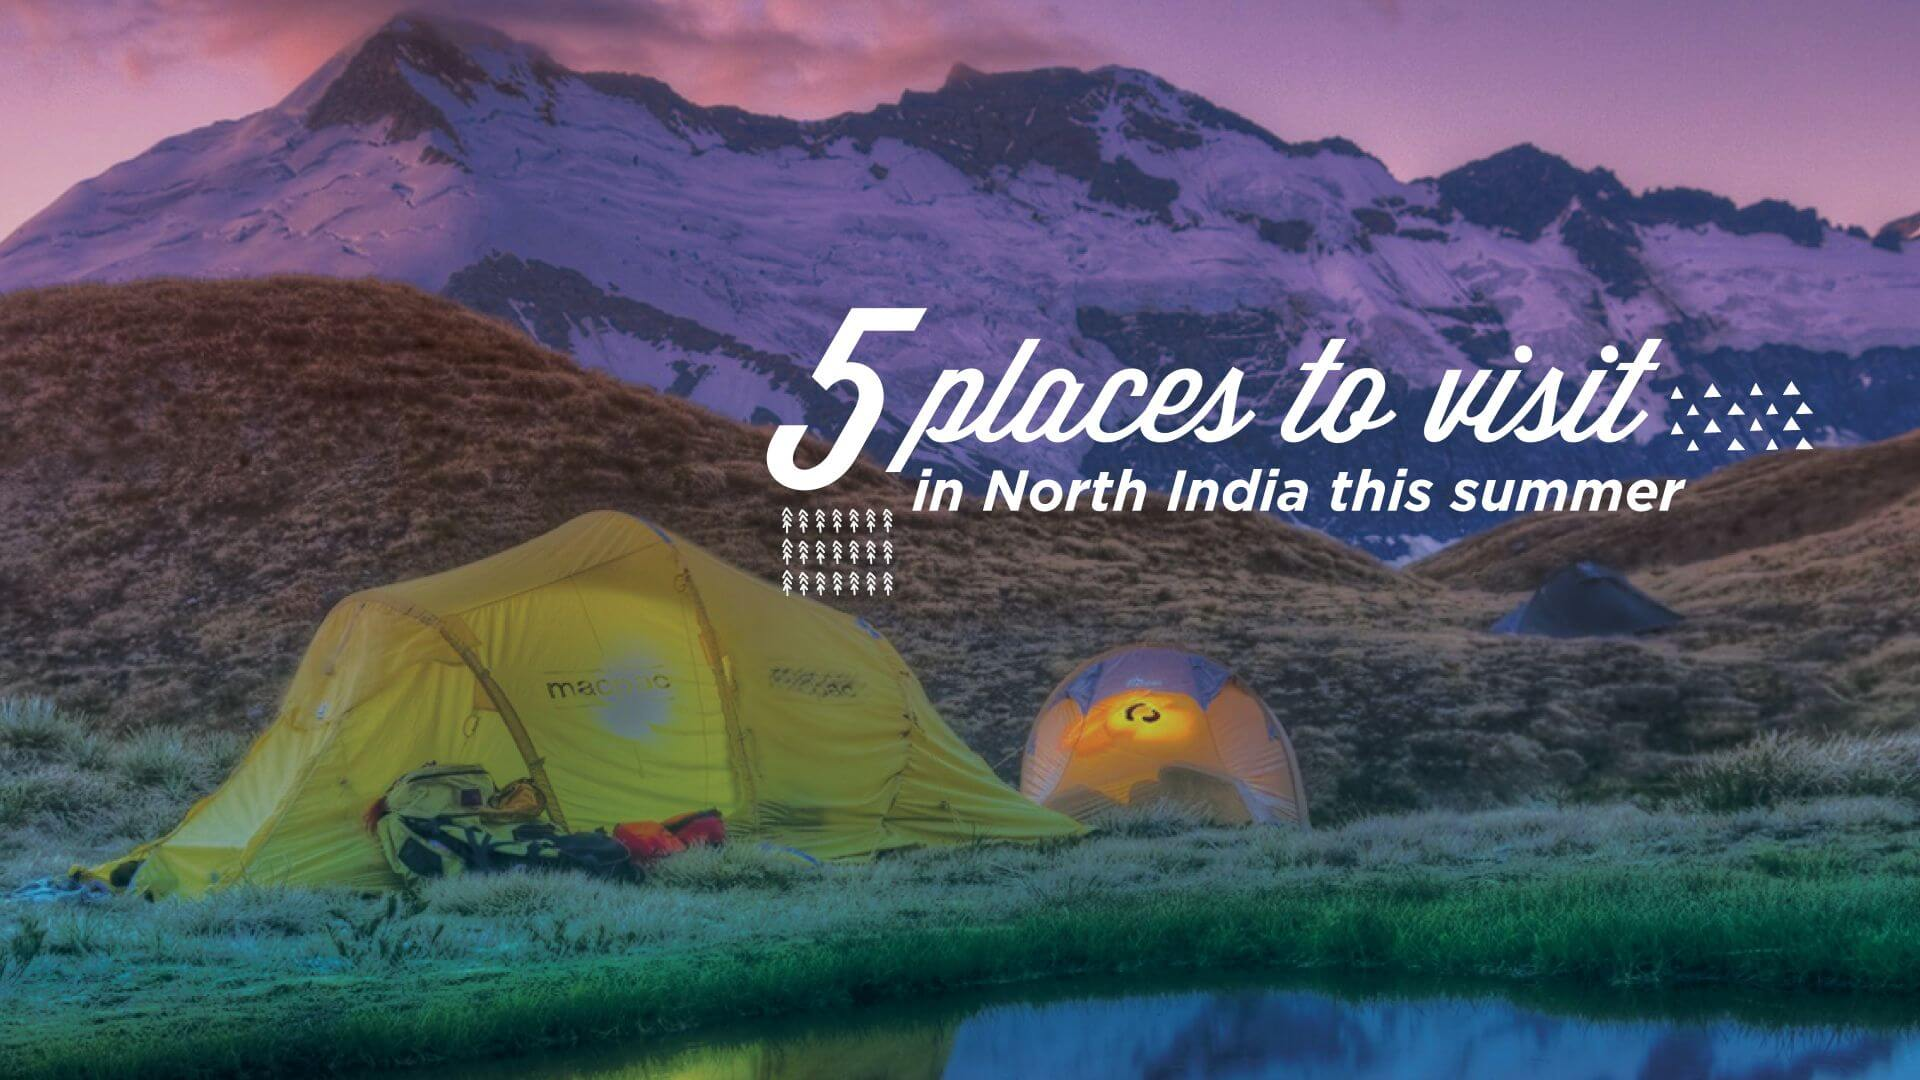 5 places to visit in North India this summer